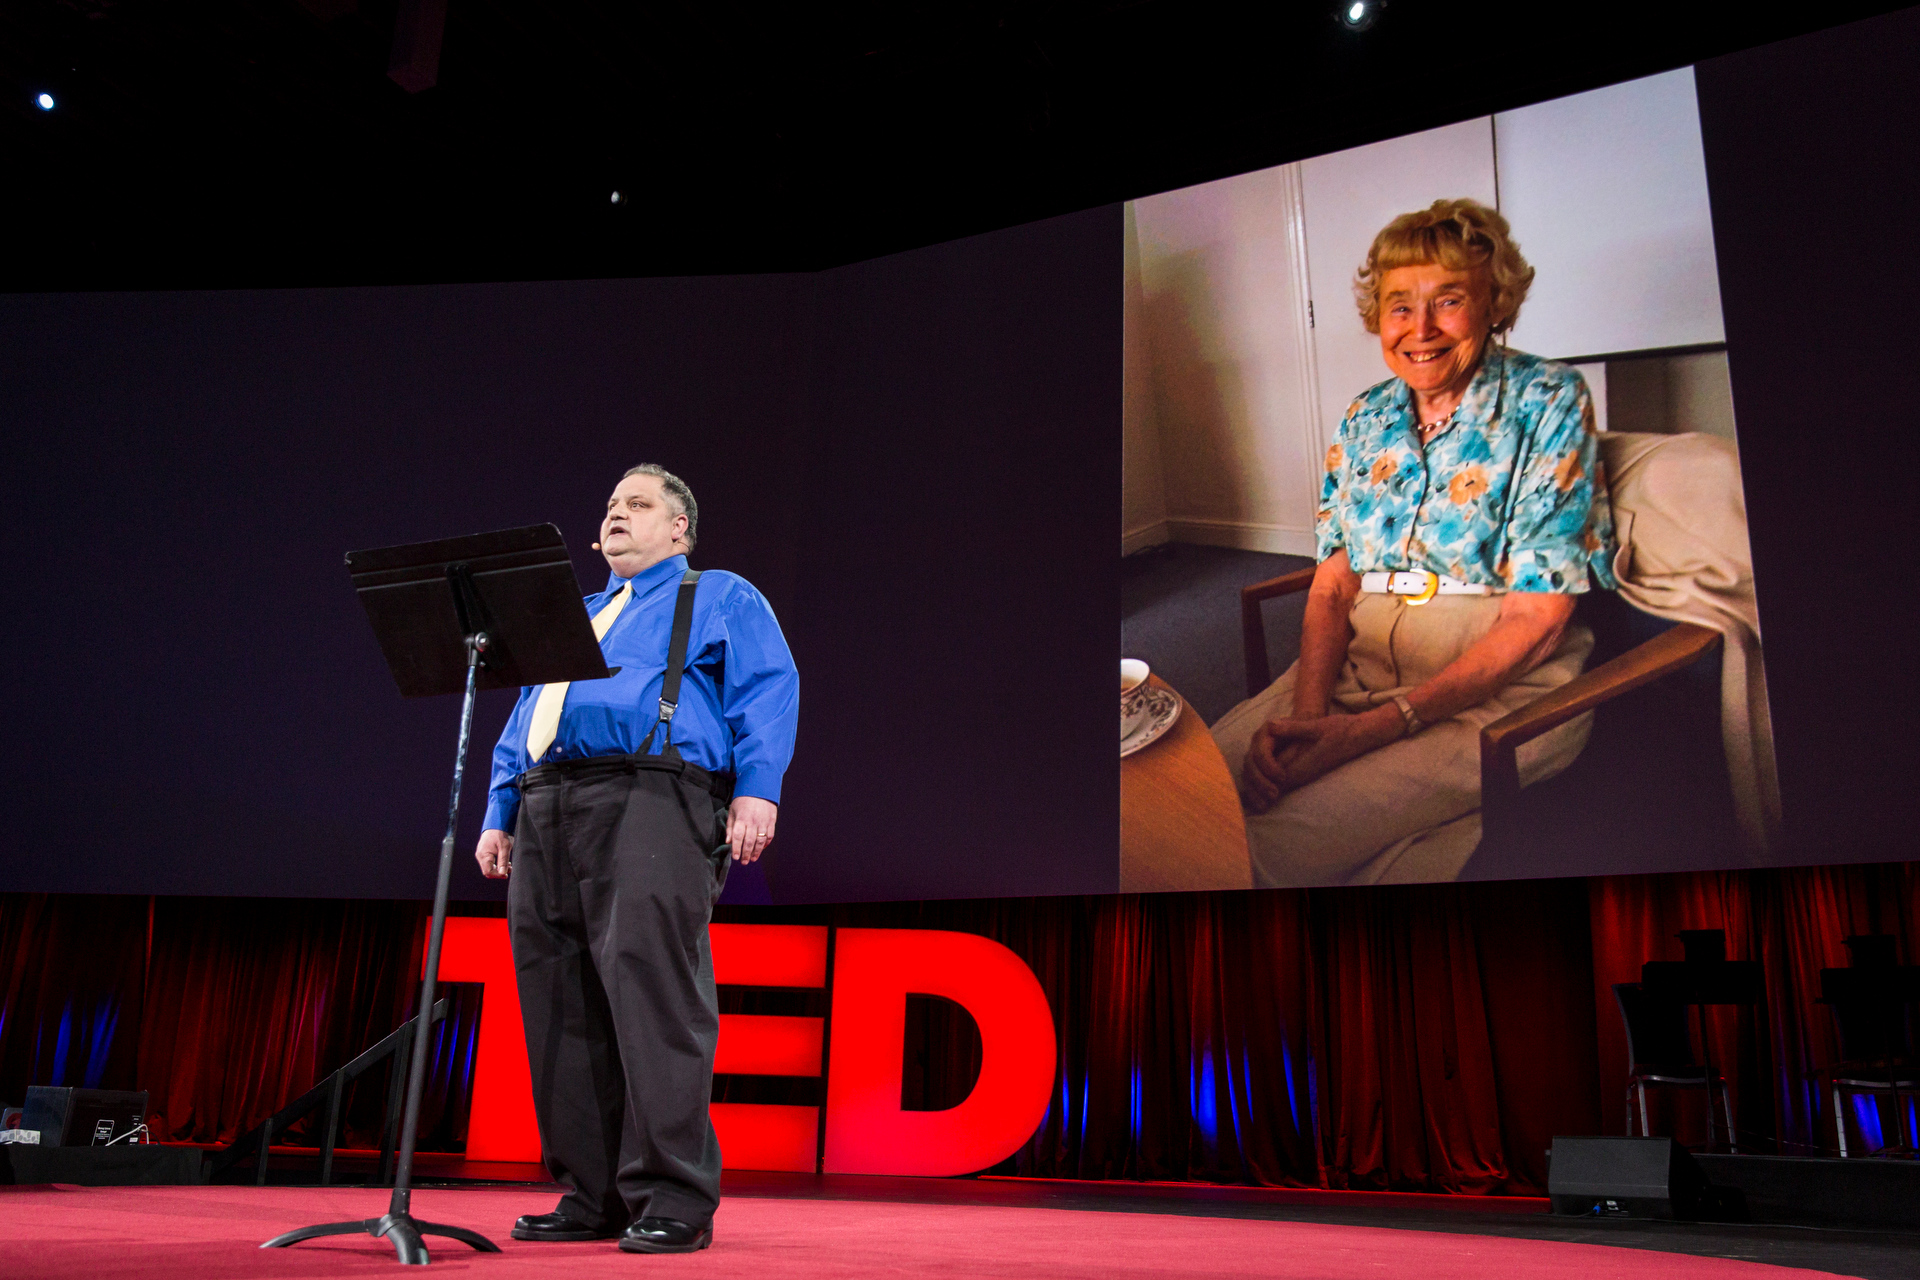 Steve Silberman speaks at TED2015 - Truth and Dare, Session 8. Photo: Bret Hartman/TED